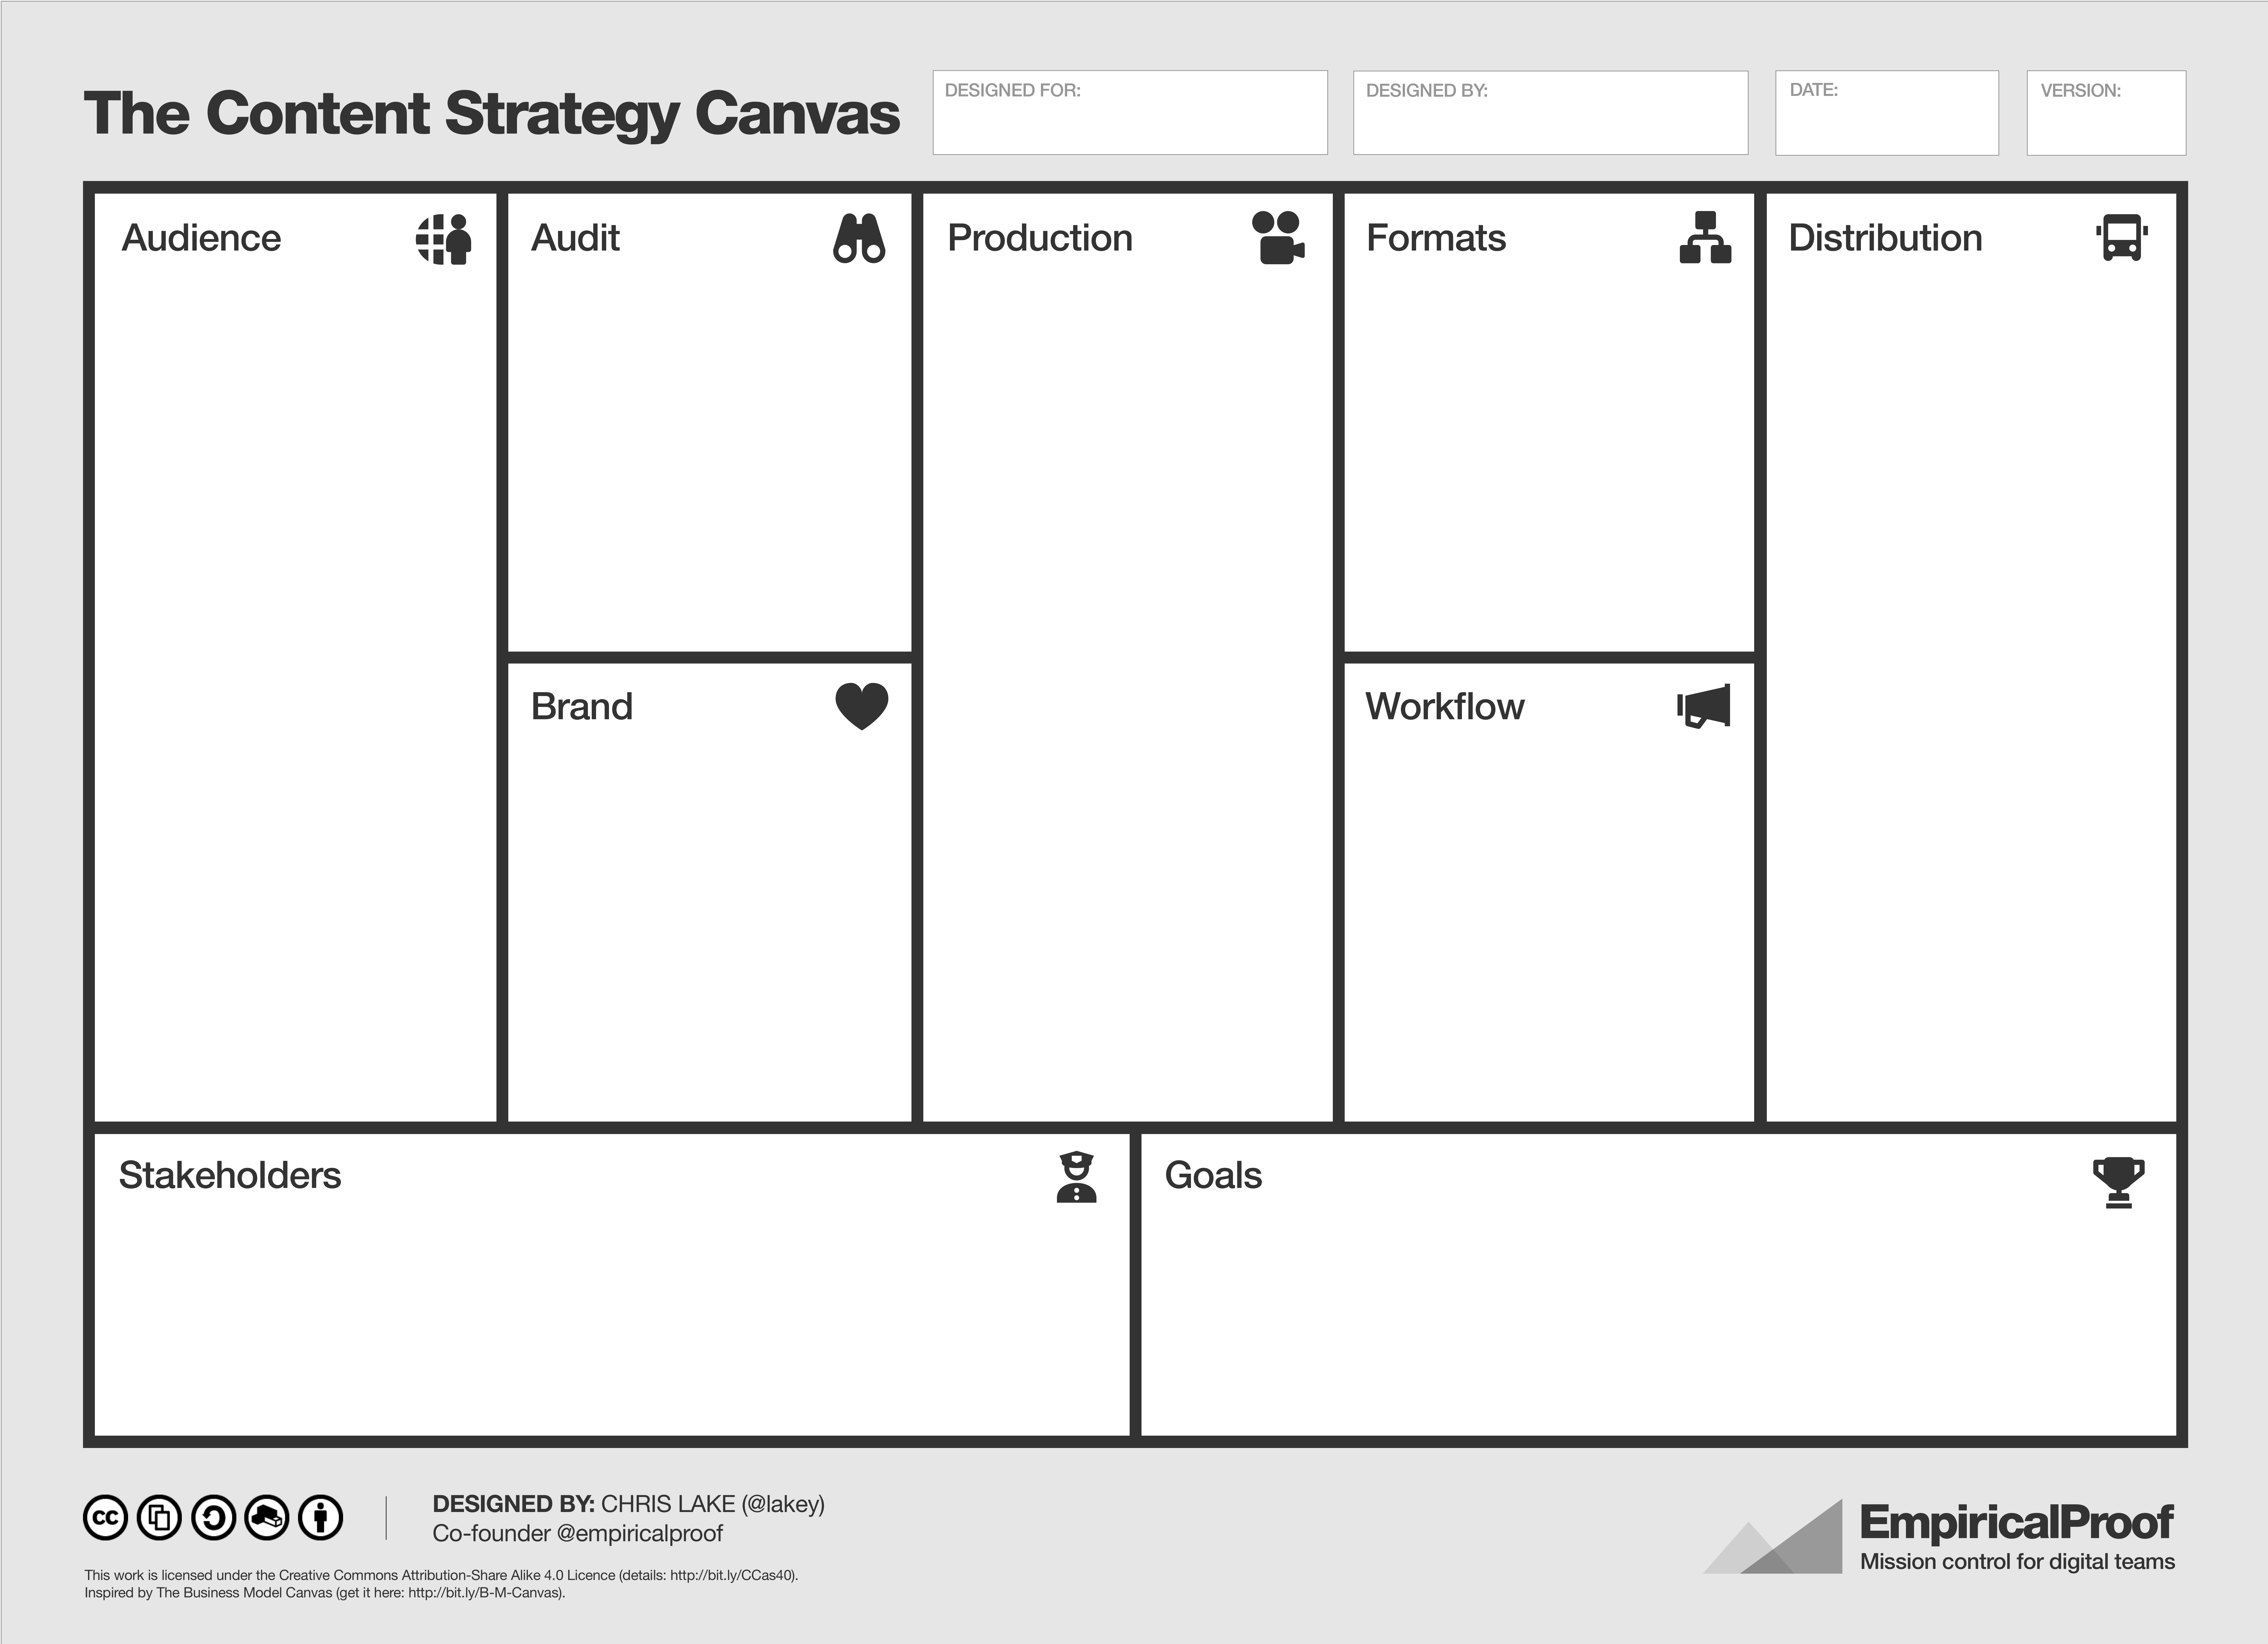 Download Empiricalproof Content Strategy Canvas  Solomo